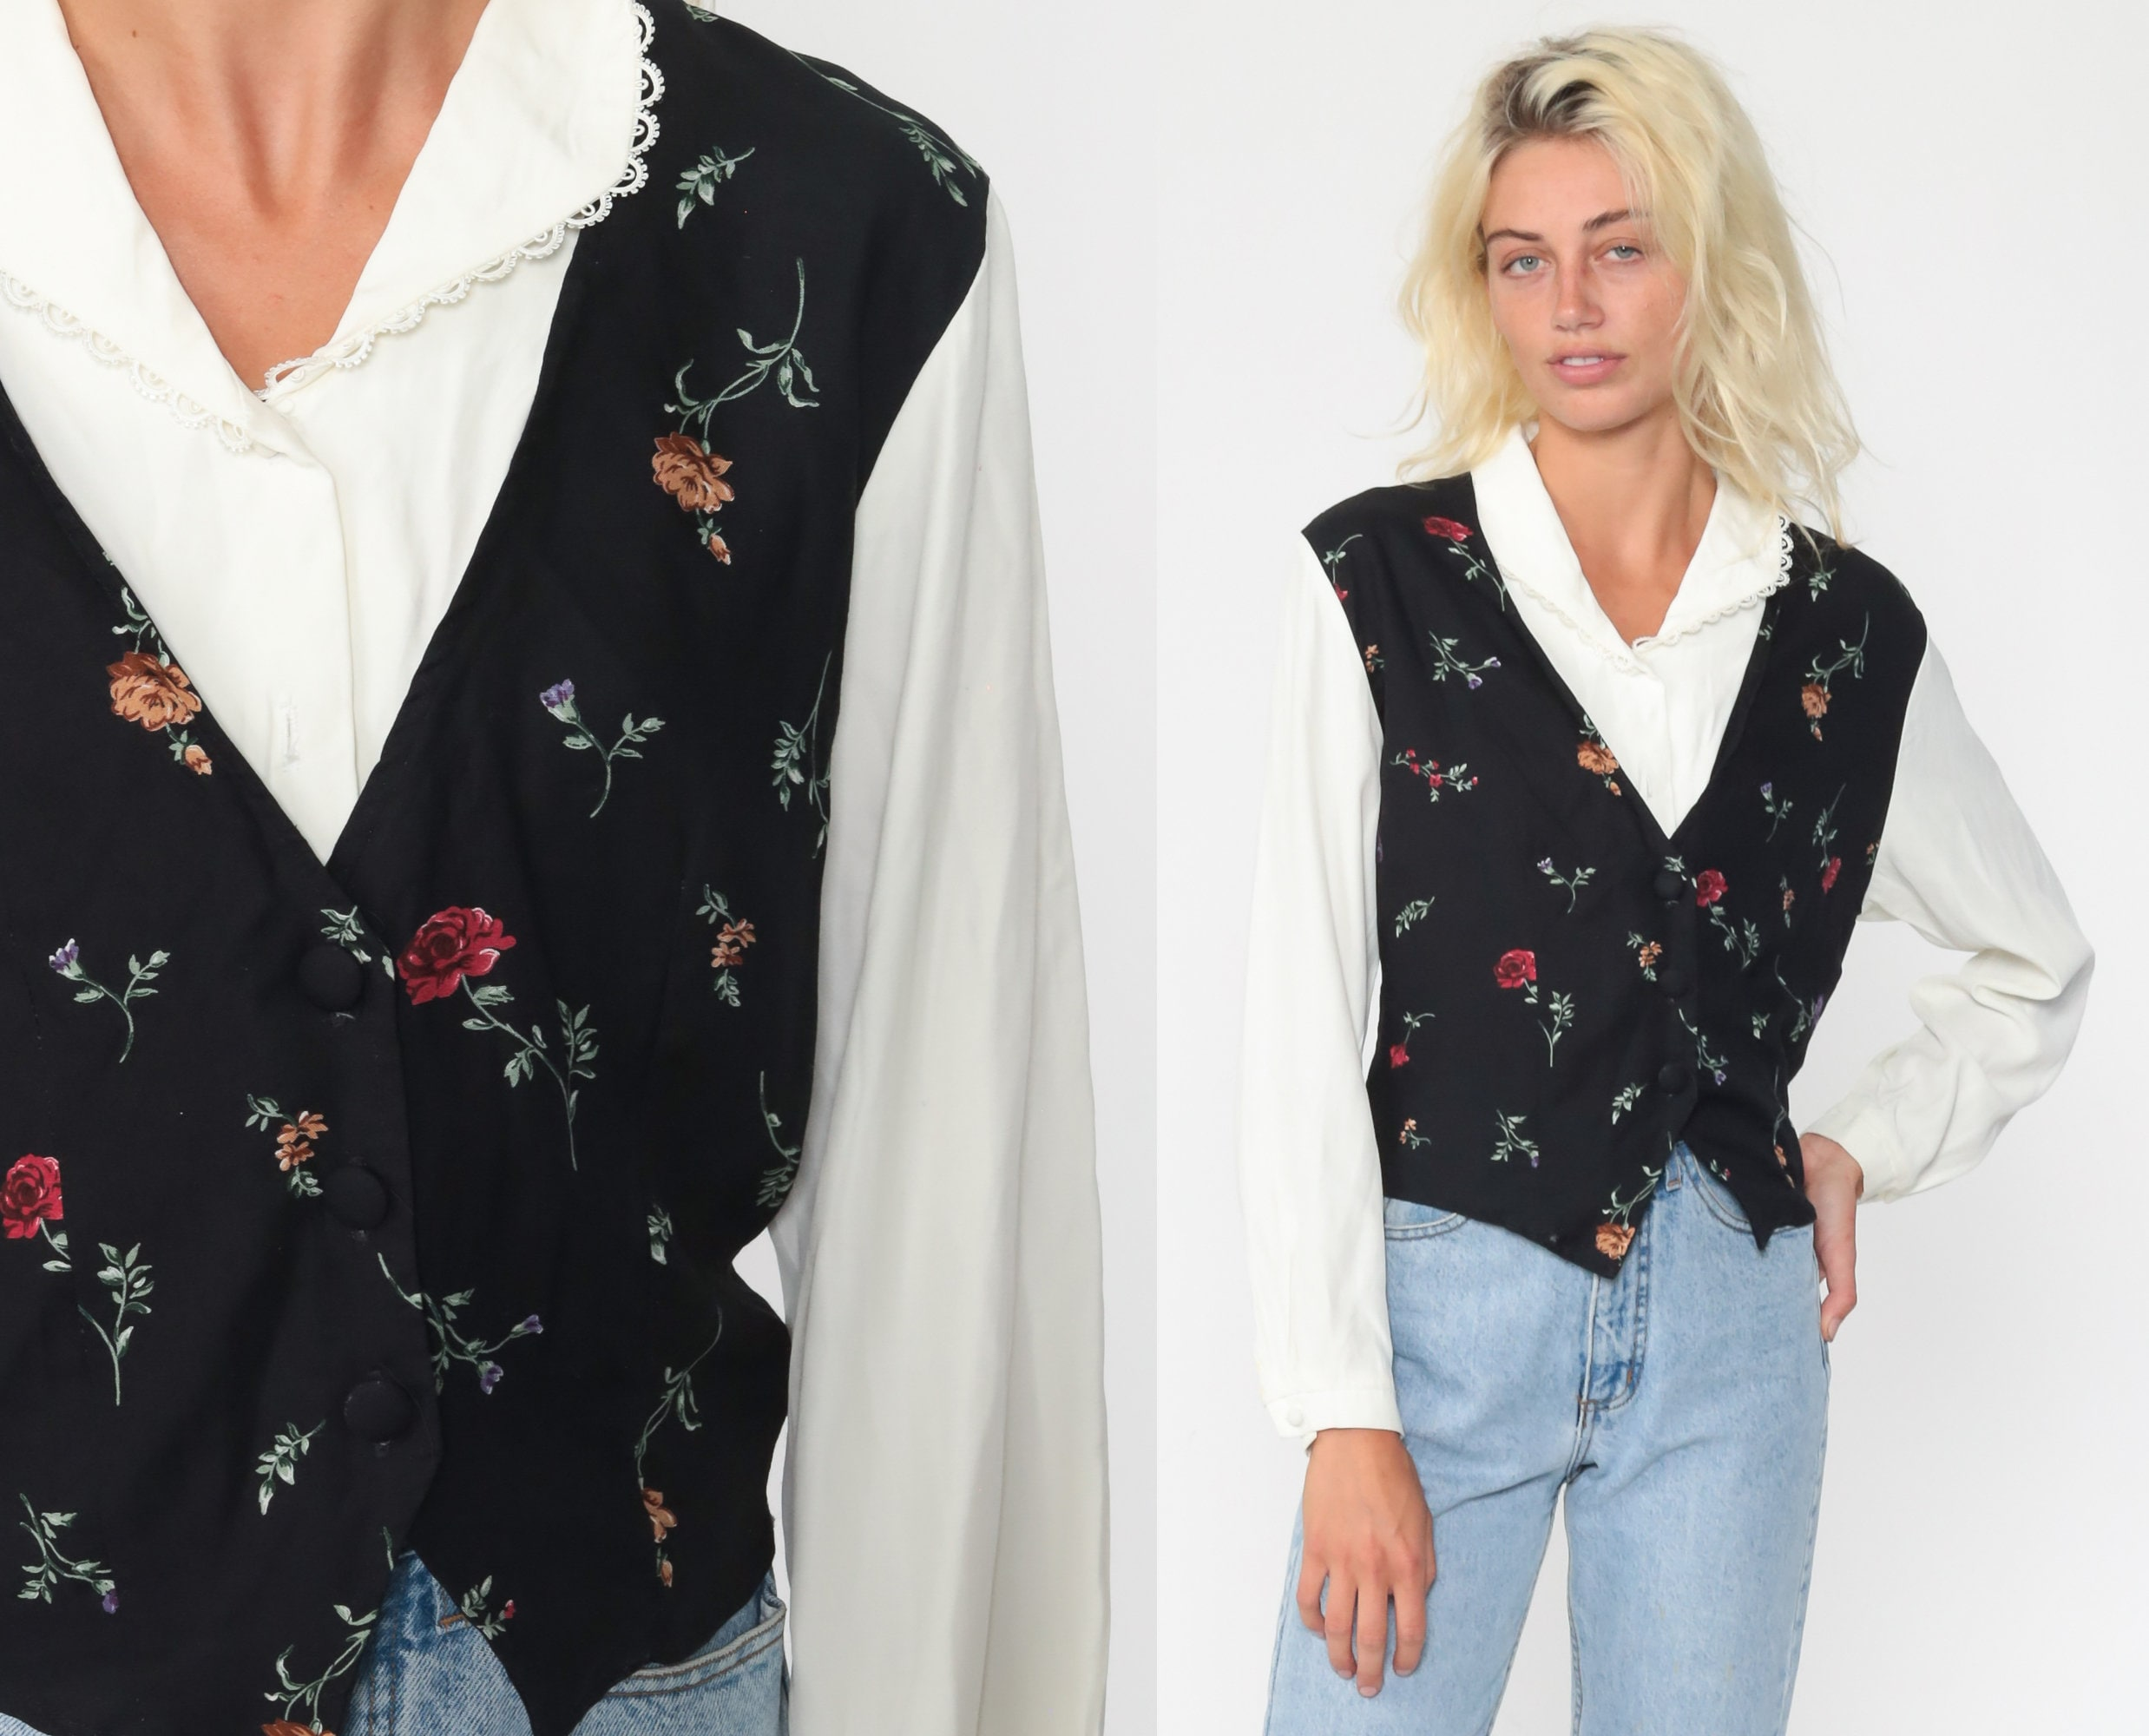 Vintage 90s Black and White Floral Pattern Blouse Shirt